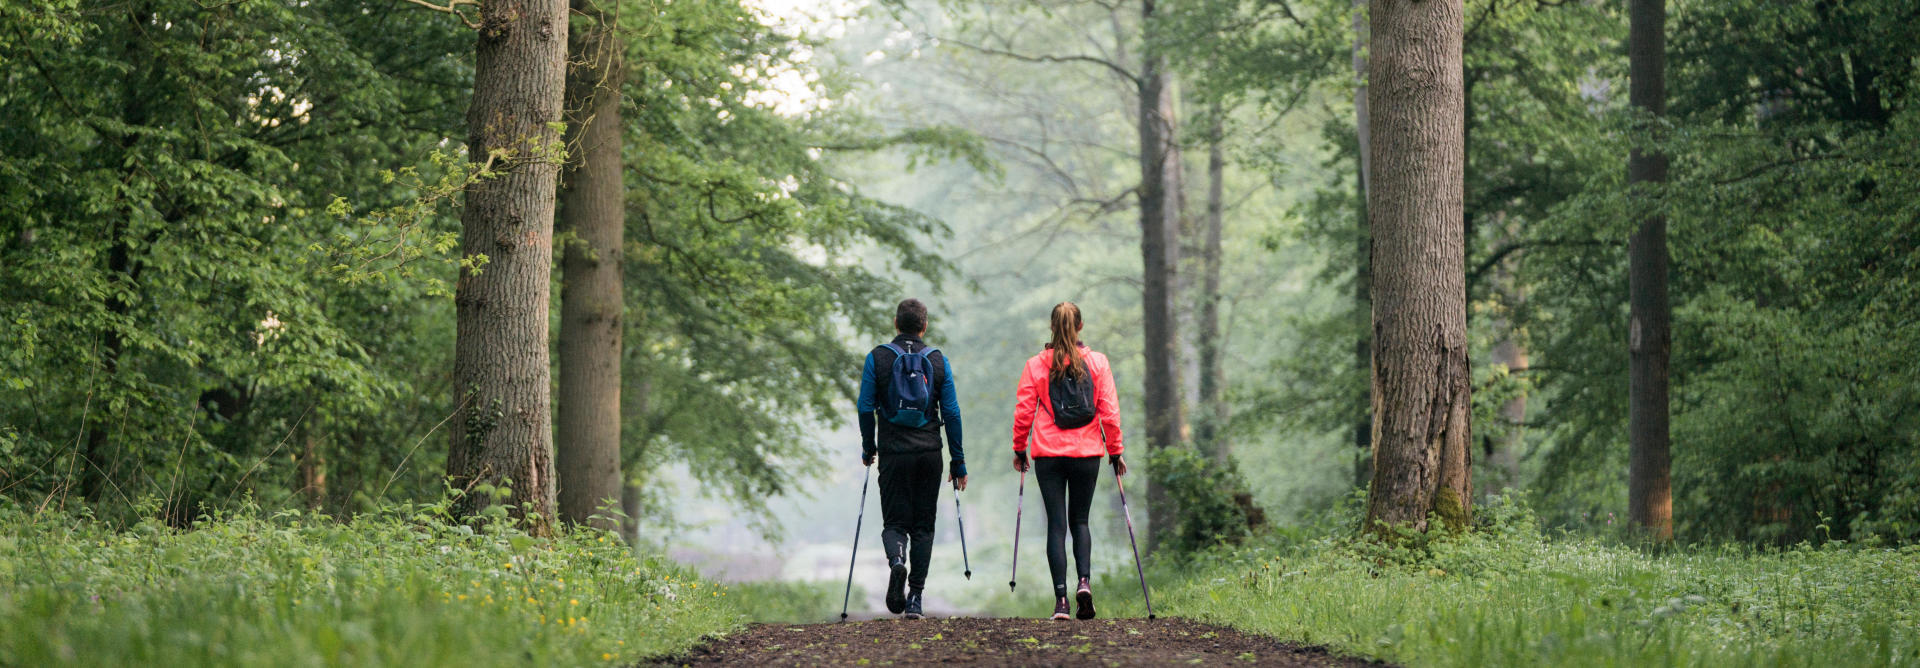 Sylvotherapy-Nordic-walking-benefits